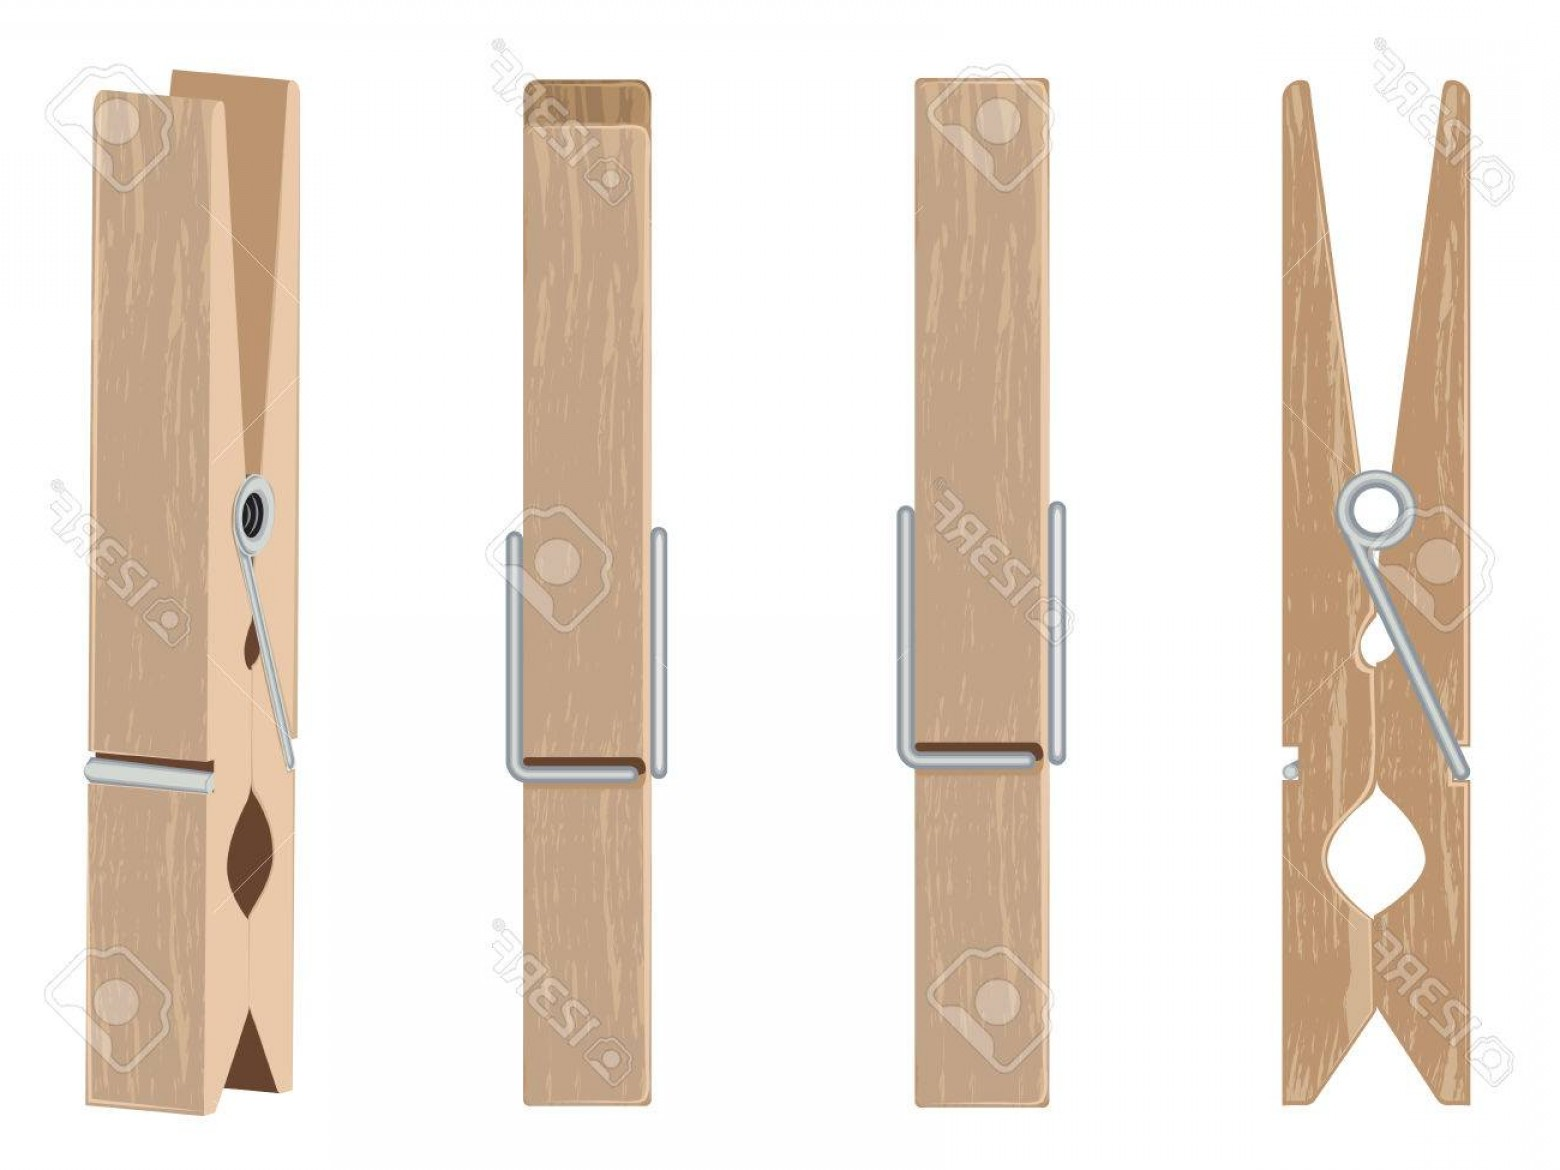 Vector Clothes Pins: Photostock Vector Collection Of Brown Wooden Clothespins Pegs Illustration